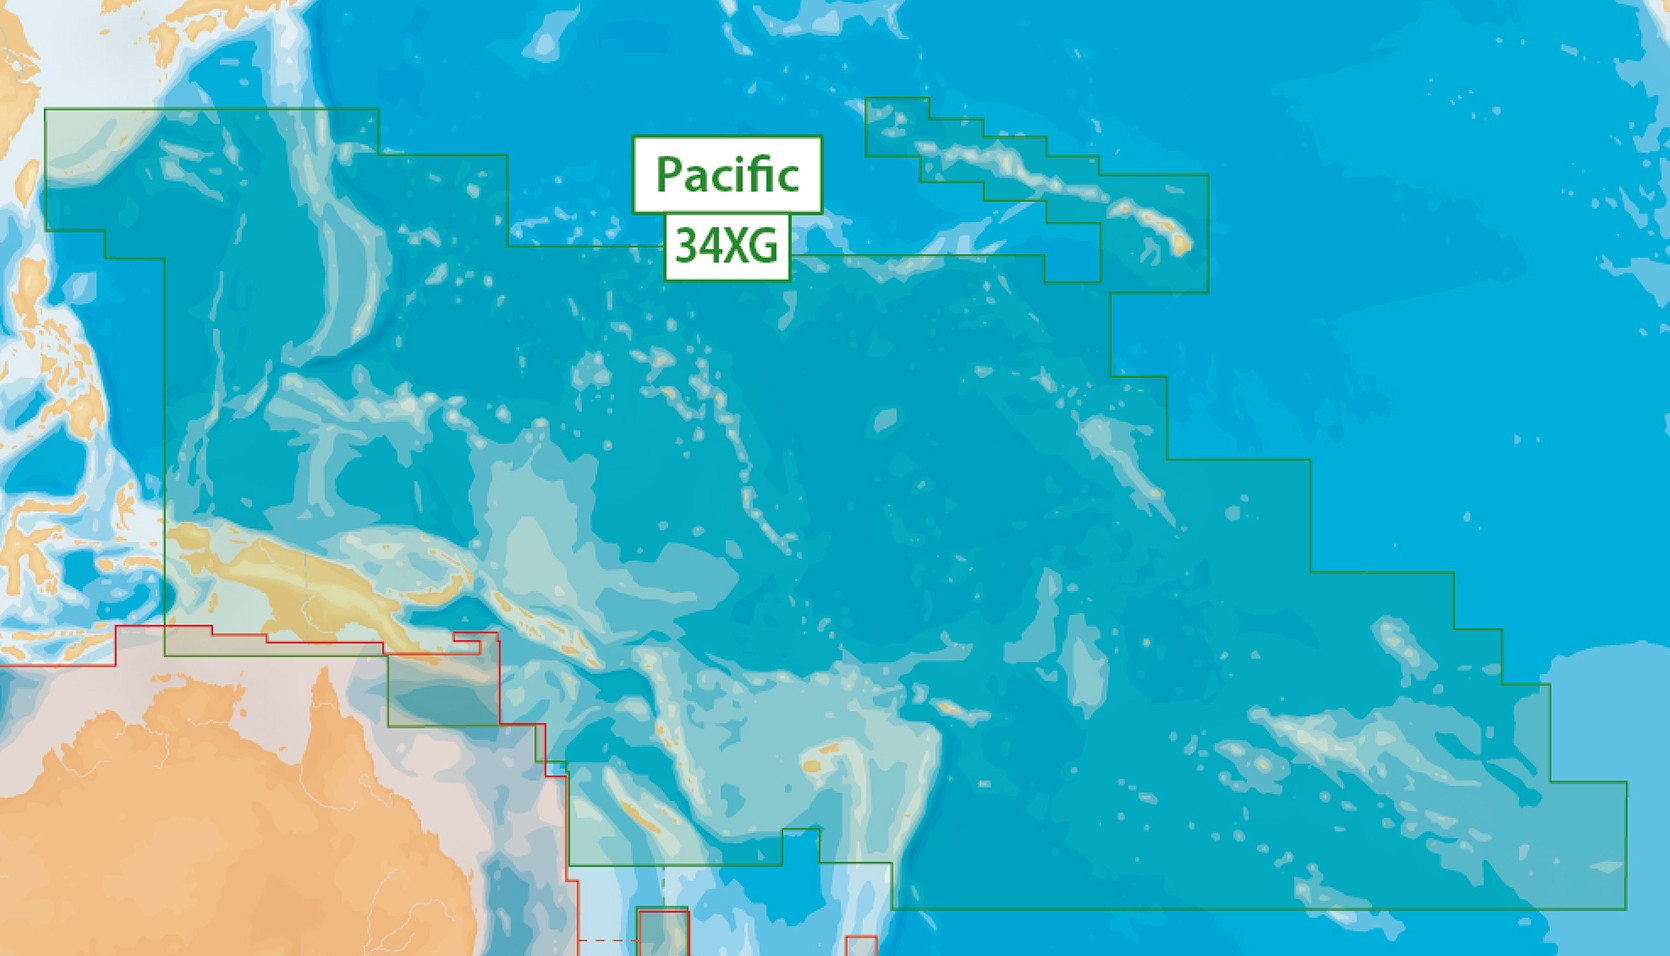 Navionics + 34XG Pacific Islands MSD Plus SD Adapter